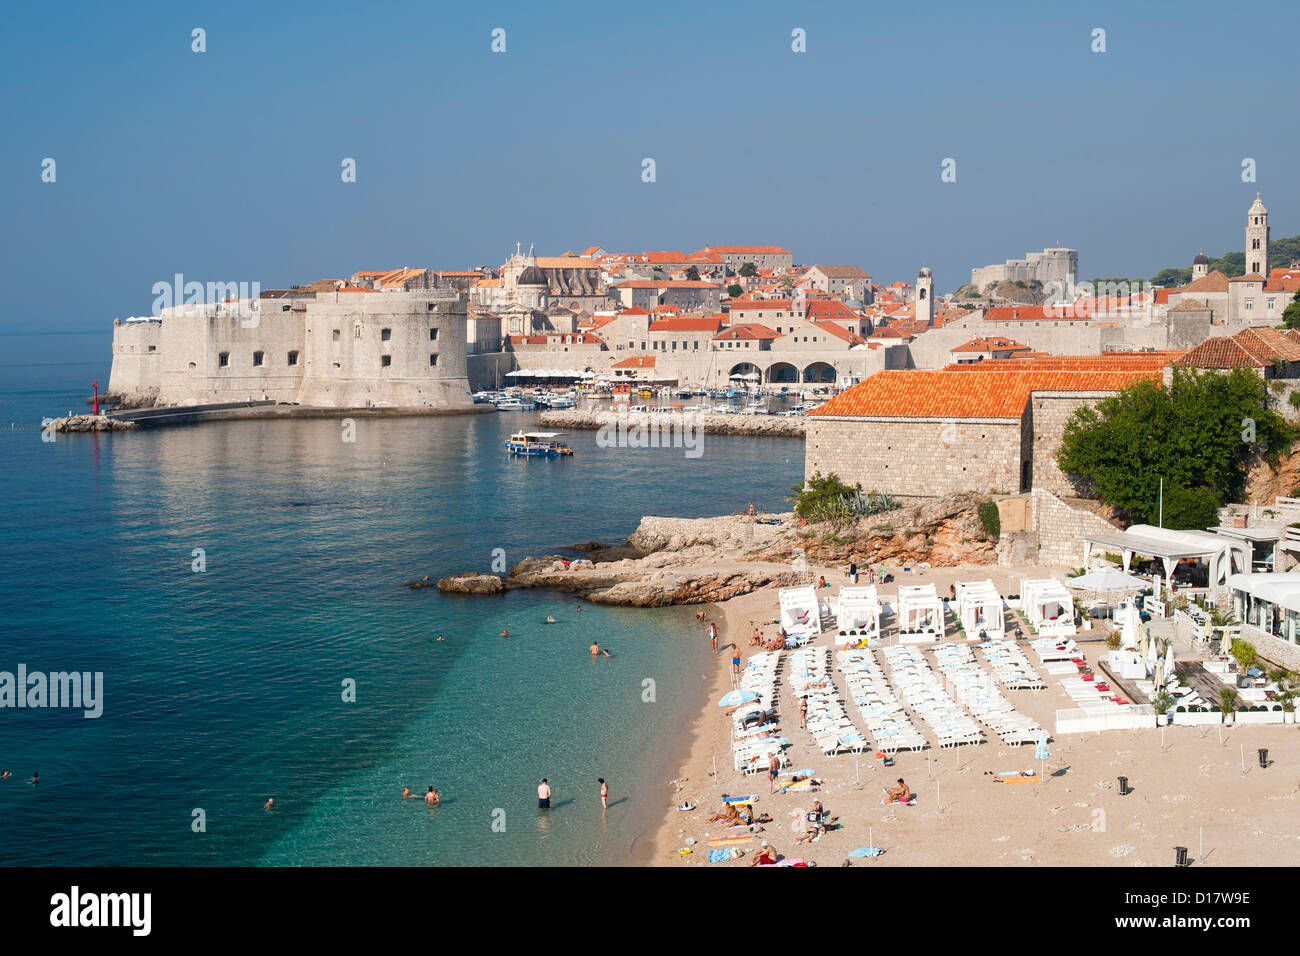 Banje beach and the old town and harbour of Dubrovnik on the Adriatic coast of Croatia. - Stock Image